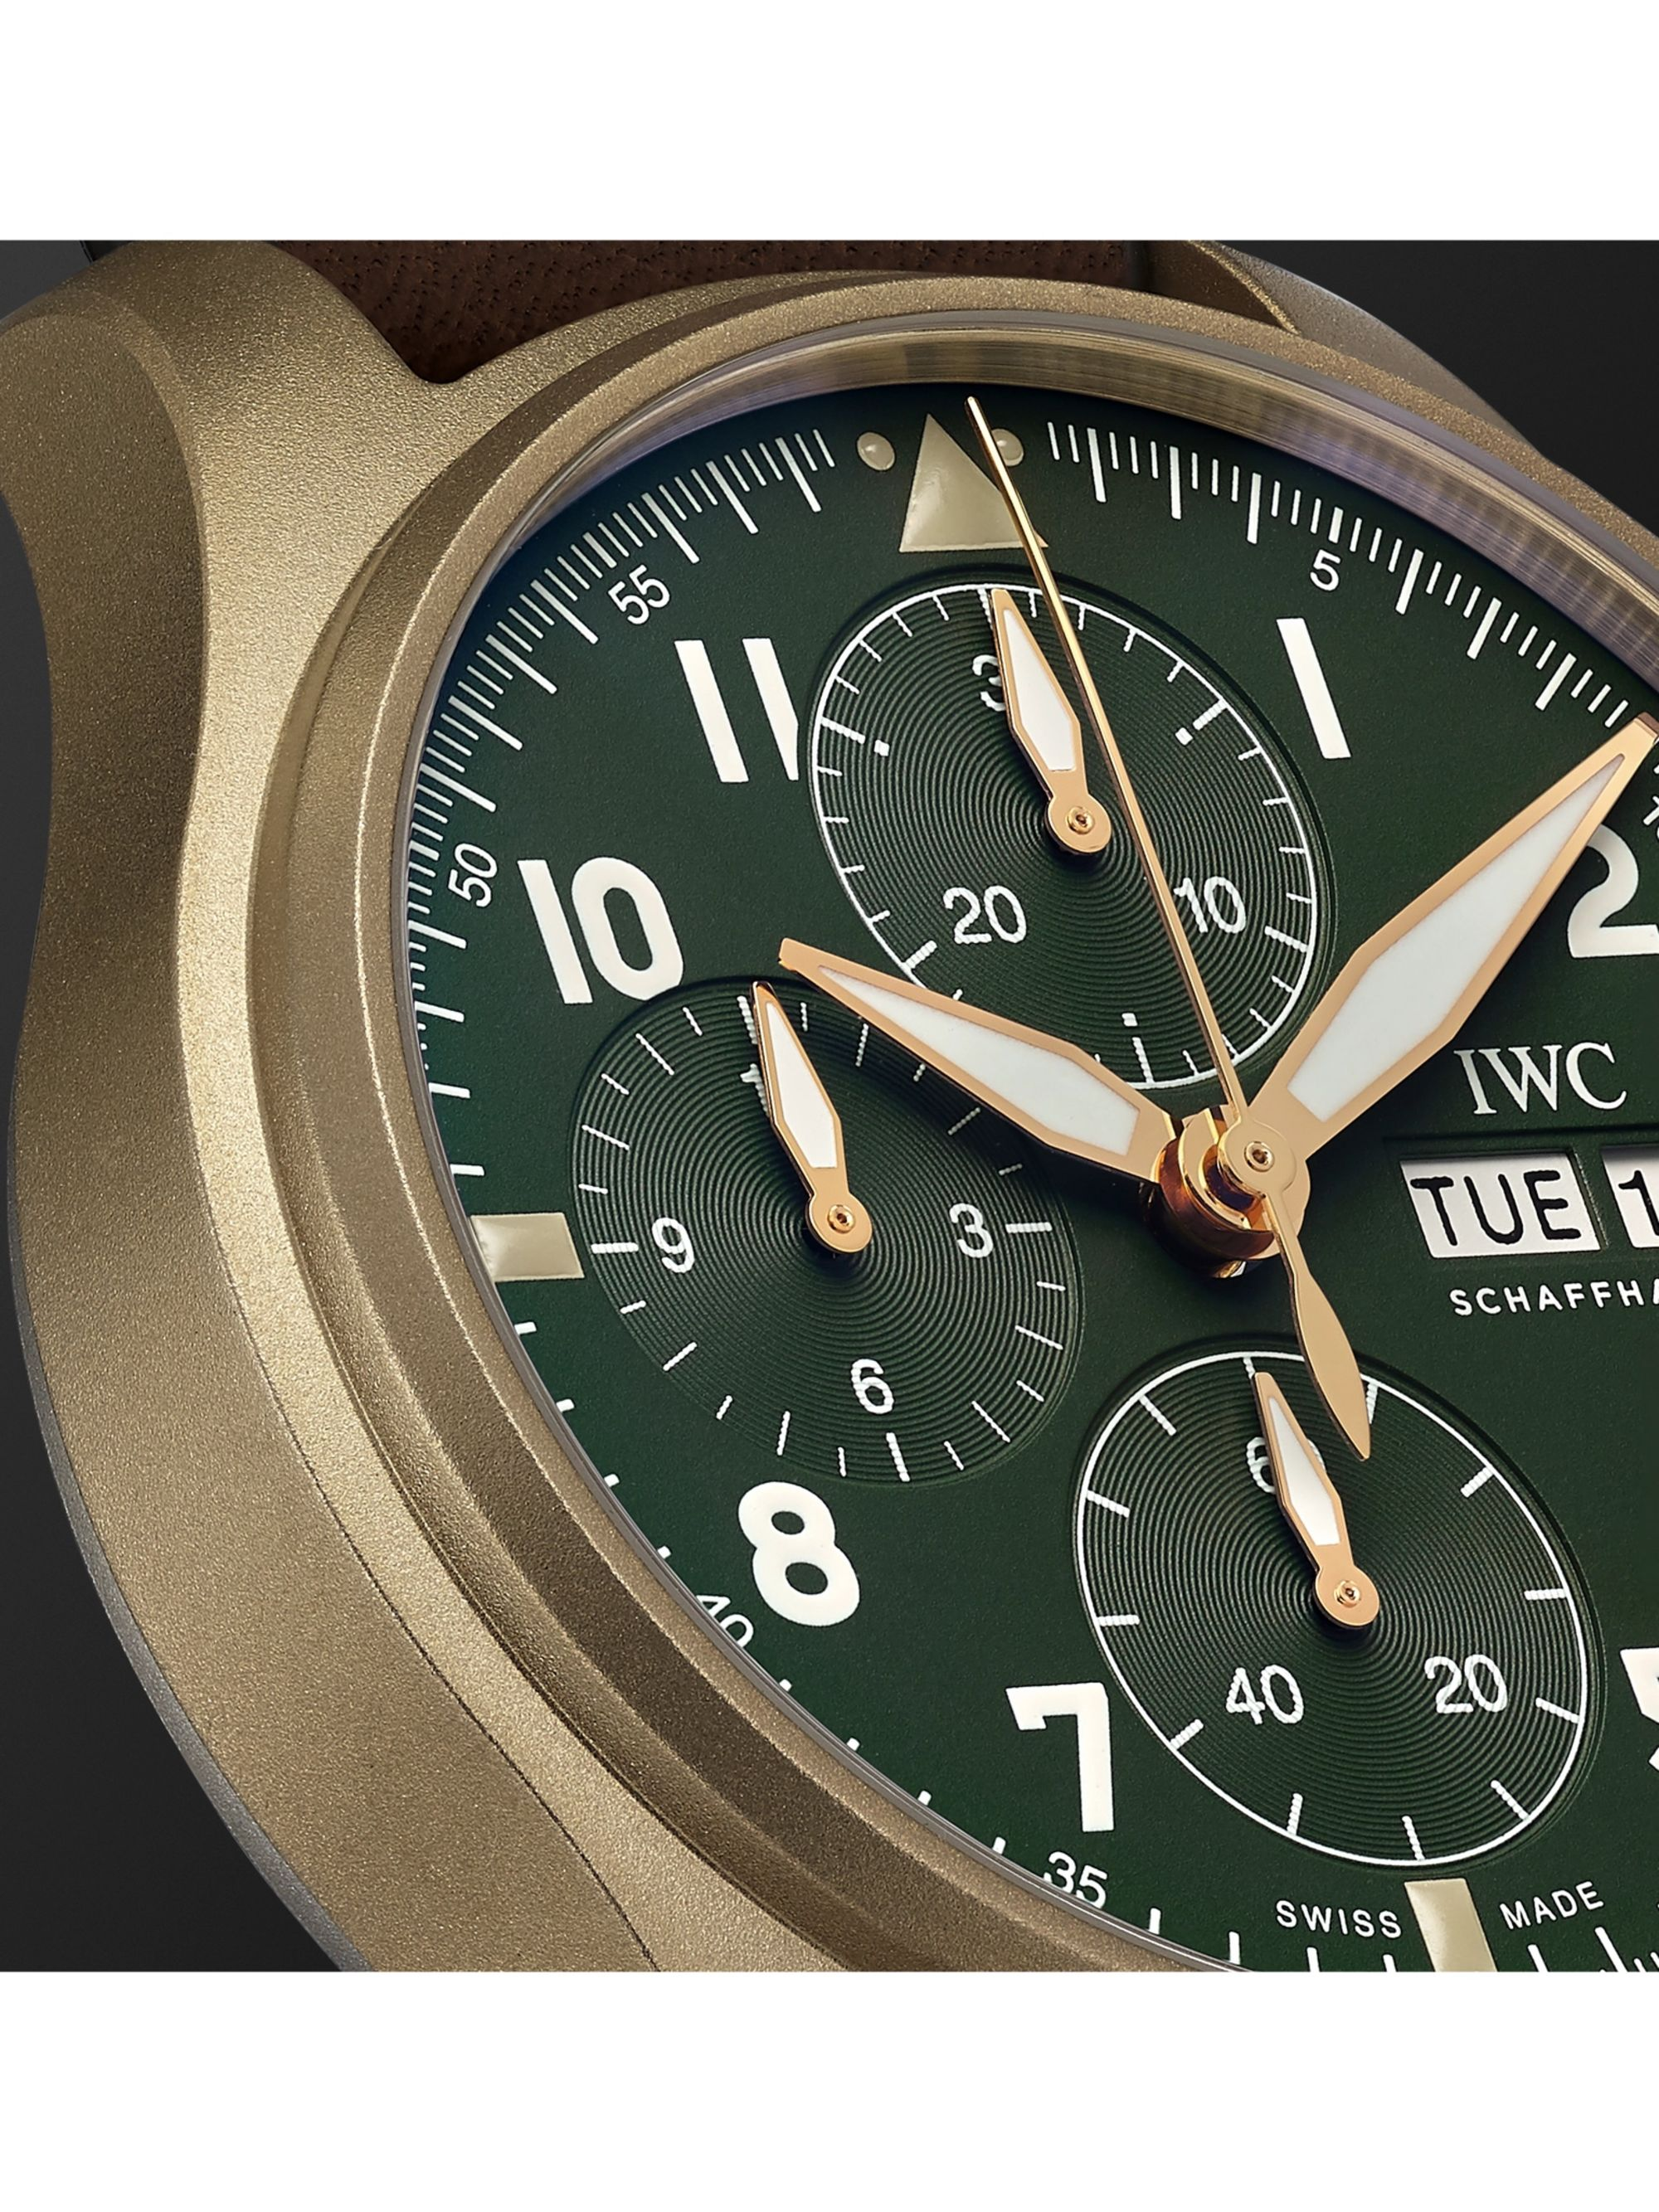 IWC SCHAFFHAUSEN Pilot's Spitfire Automatic Chronograph 41mm Bronze and Leather Watch